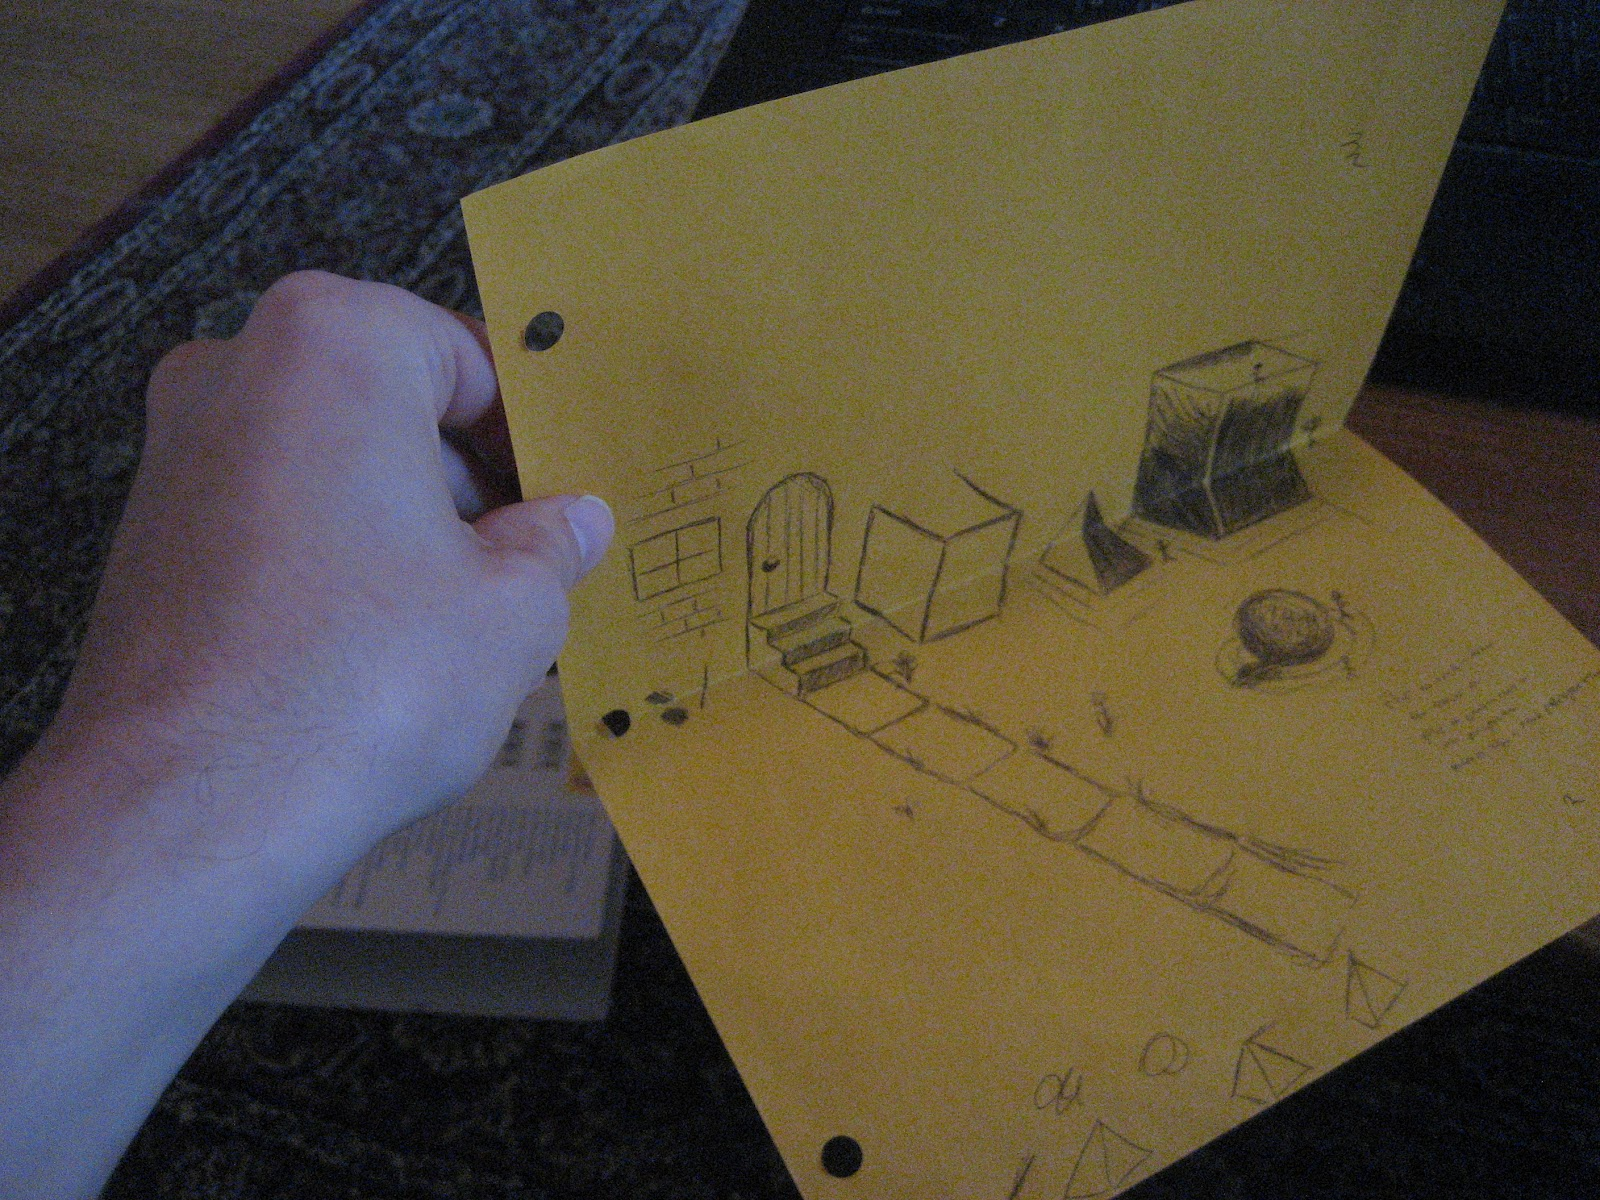 chuck does art drawing 3d in 2d